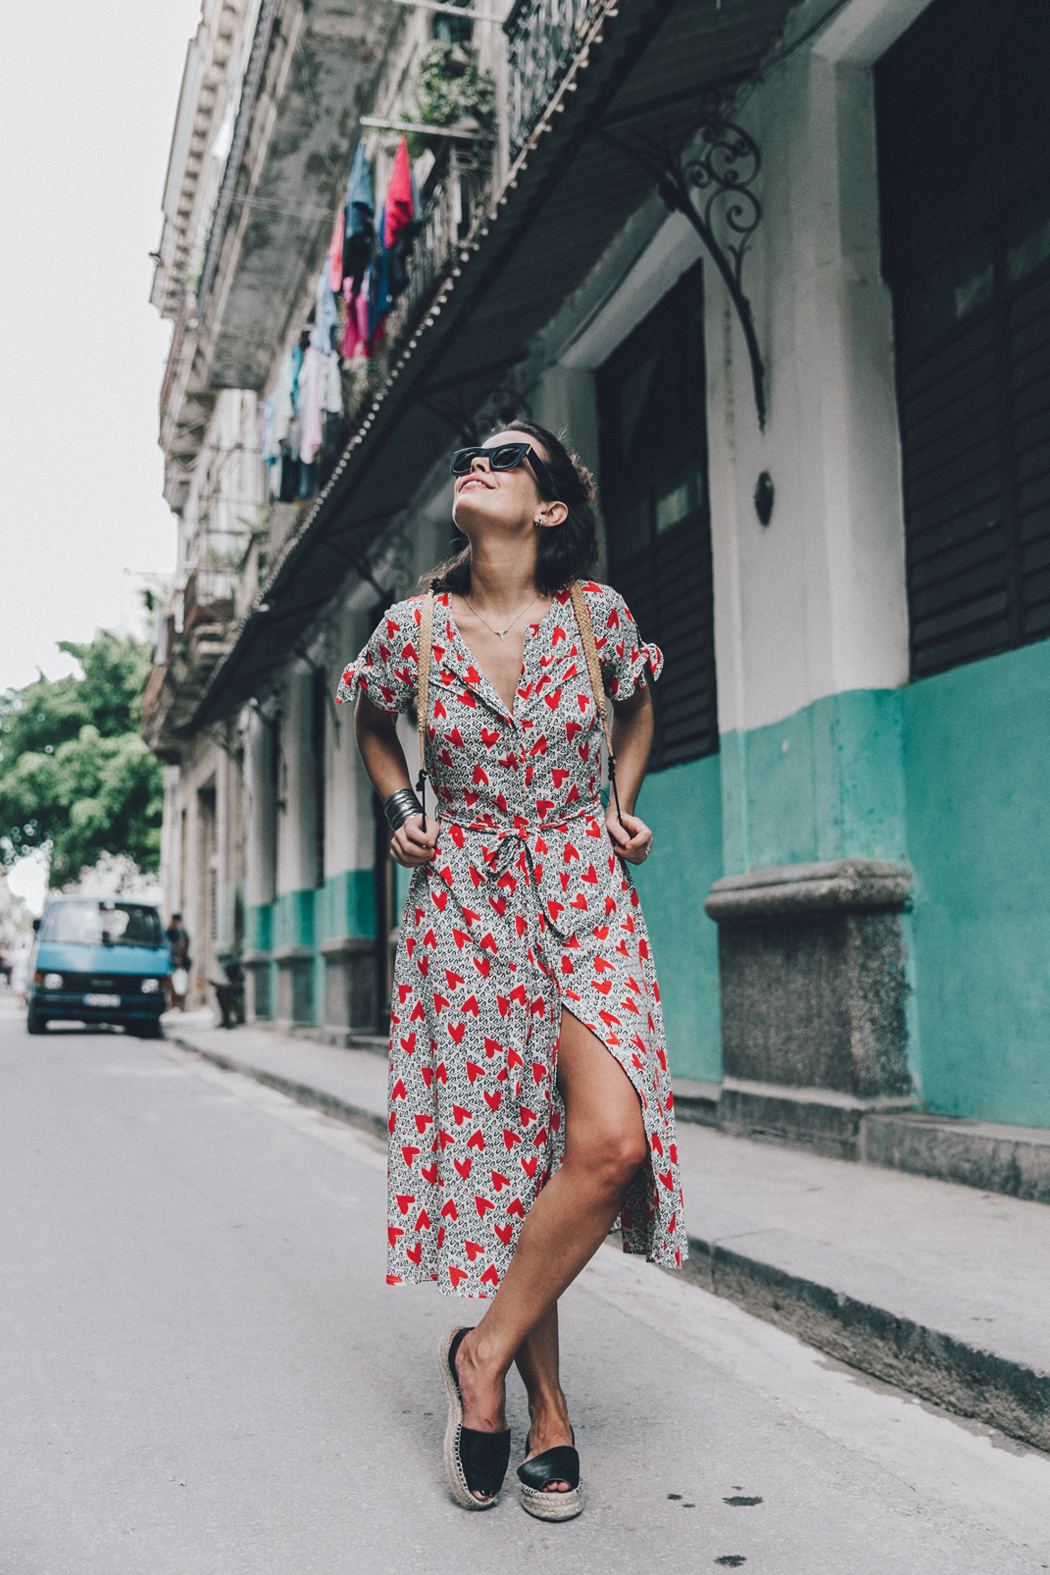 Cuba-La_Habana_Vieja-Hearts_Dress-Styled_By_Me-Aloha_Espadrilles-Outfit-Street_Style-Dress-Backpack-14